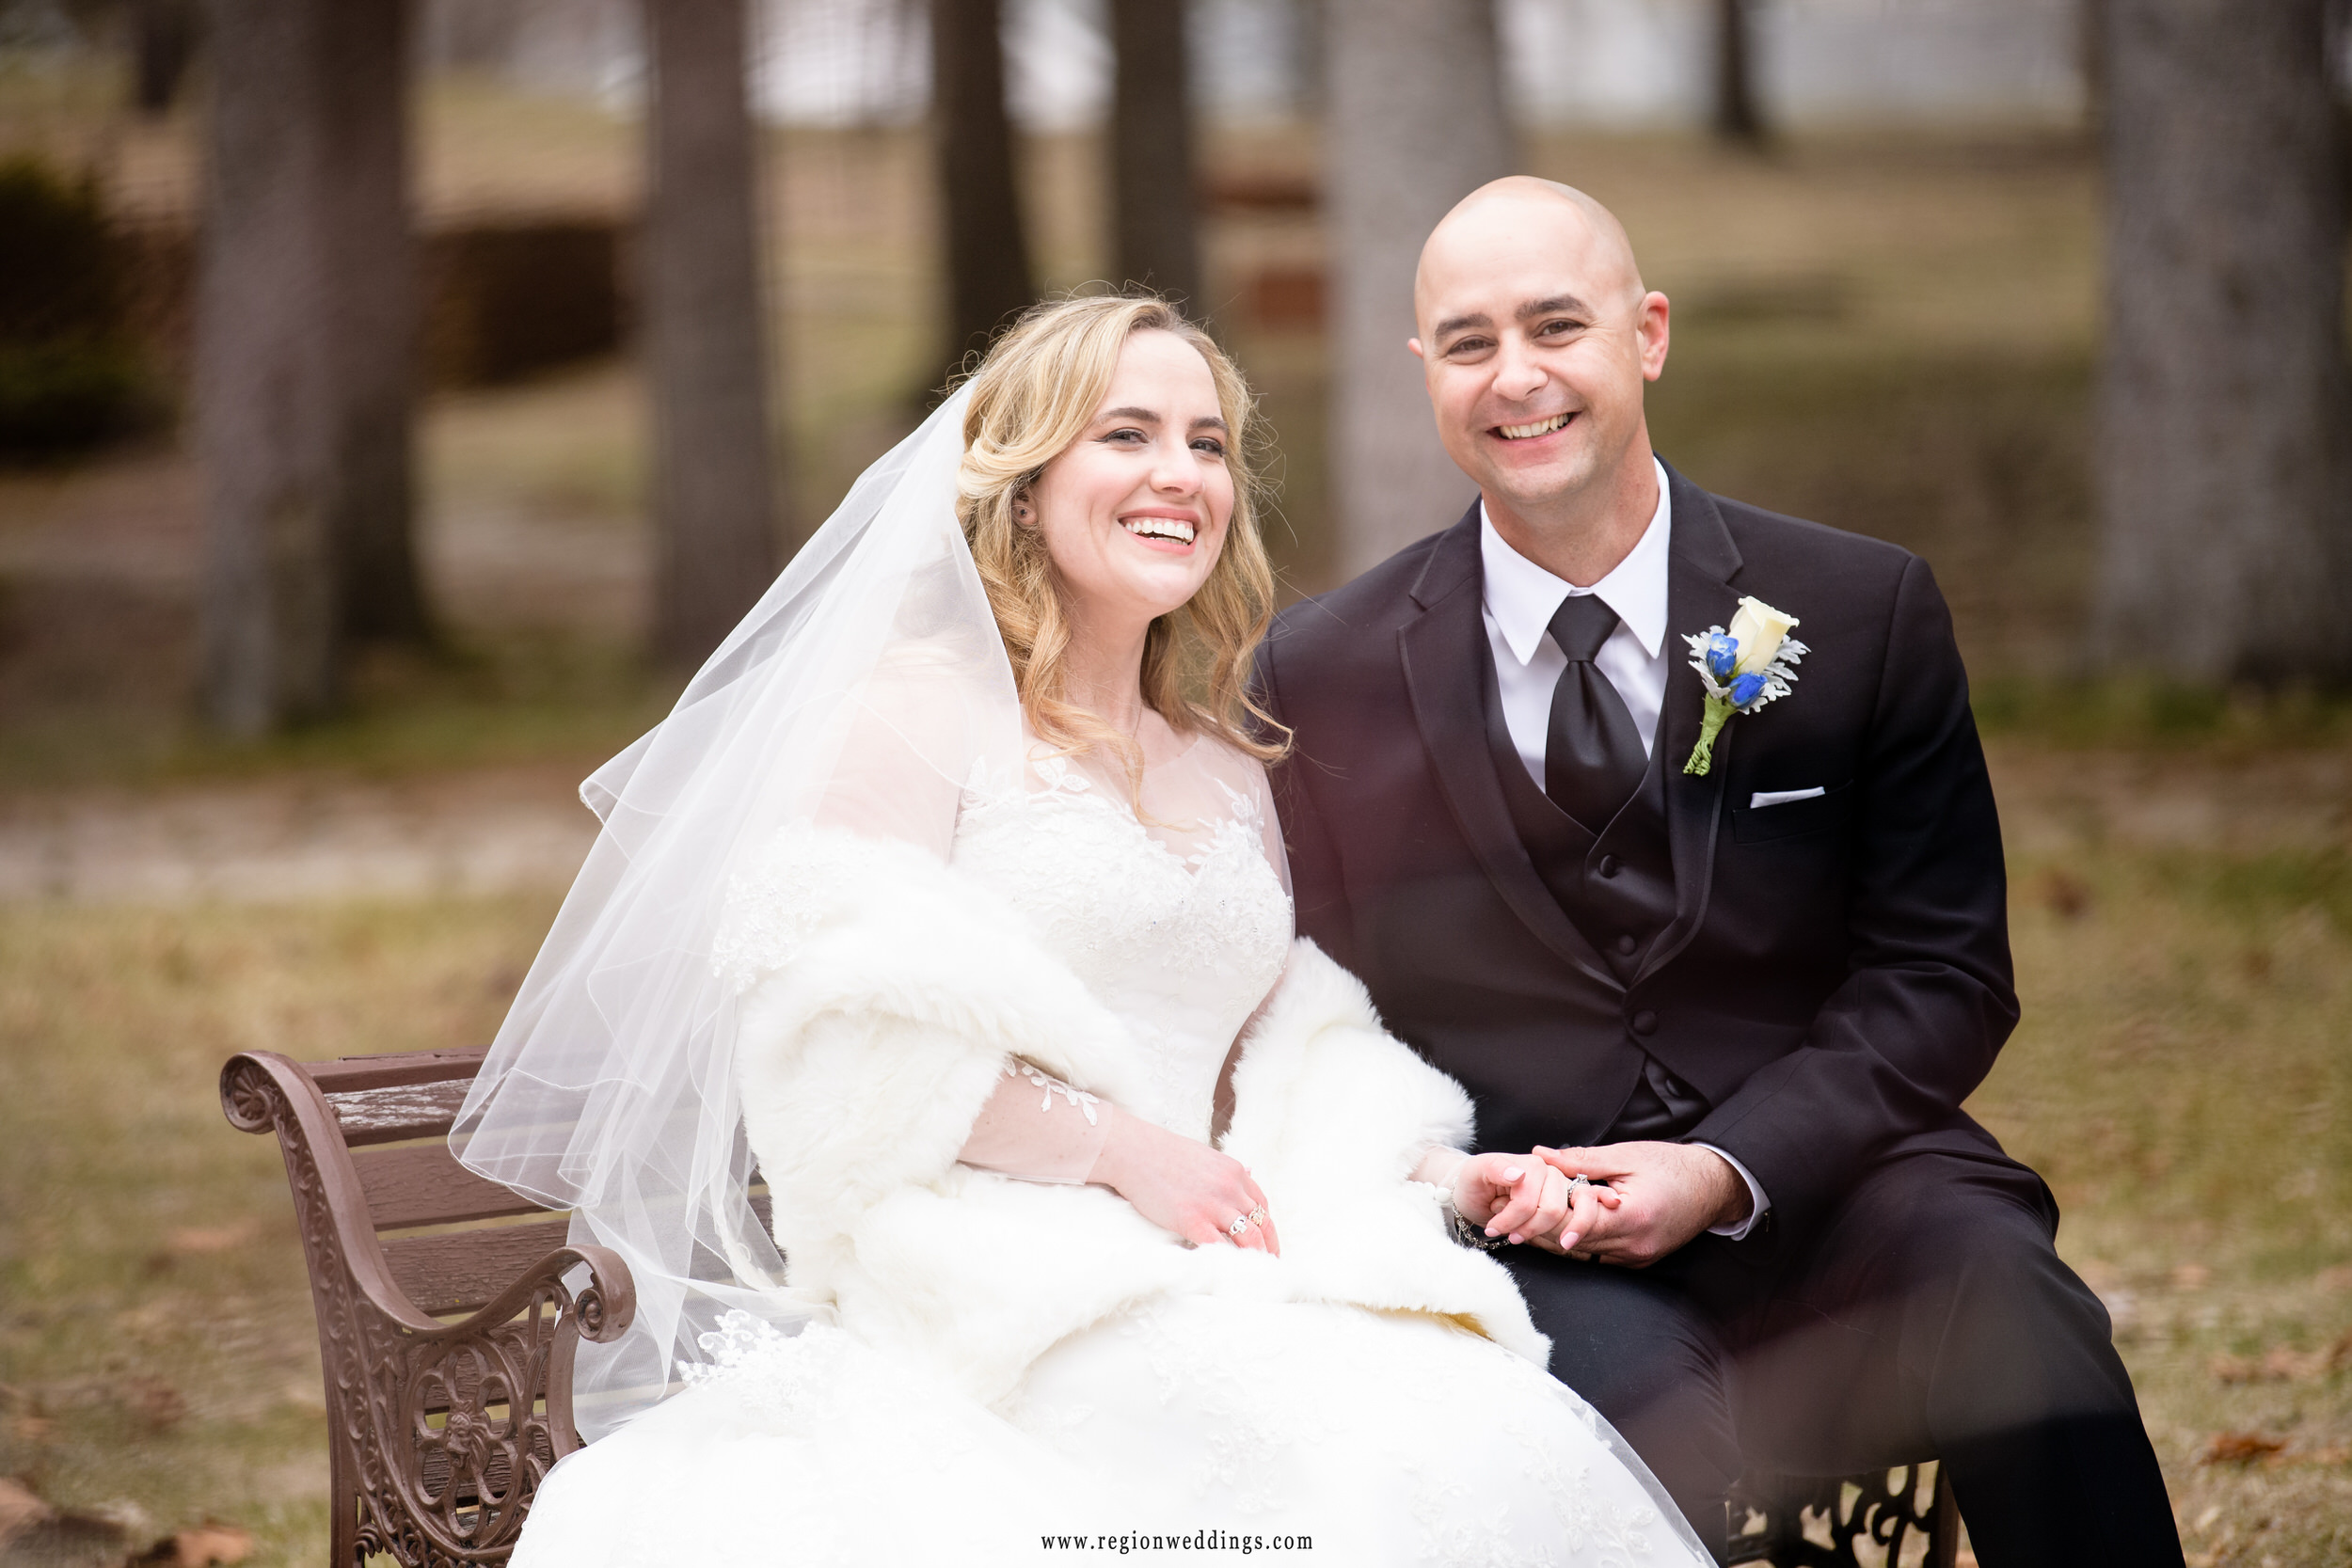 Bride and groom on a park bench at Carmelite Shrine during their winter wedding.